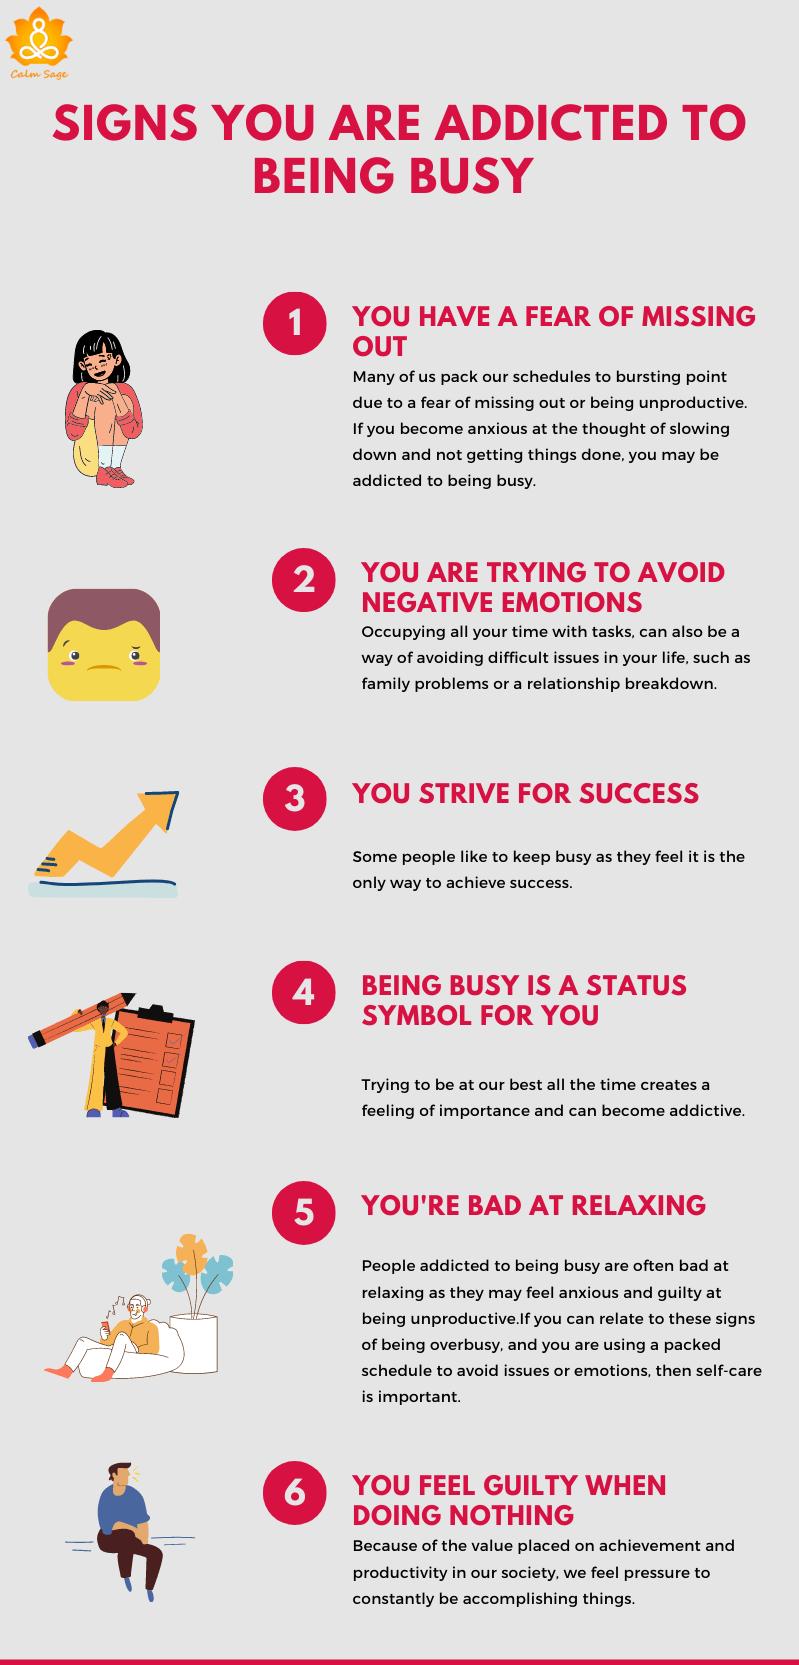 signs you are addicted to being busy